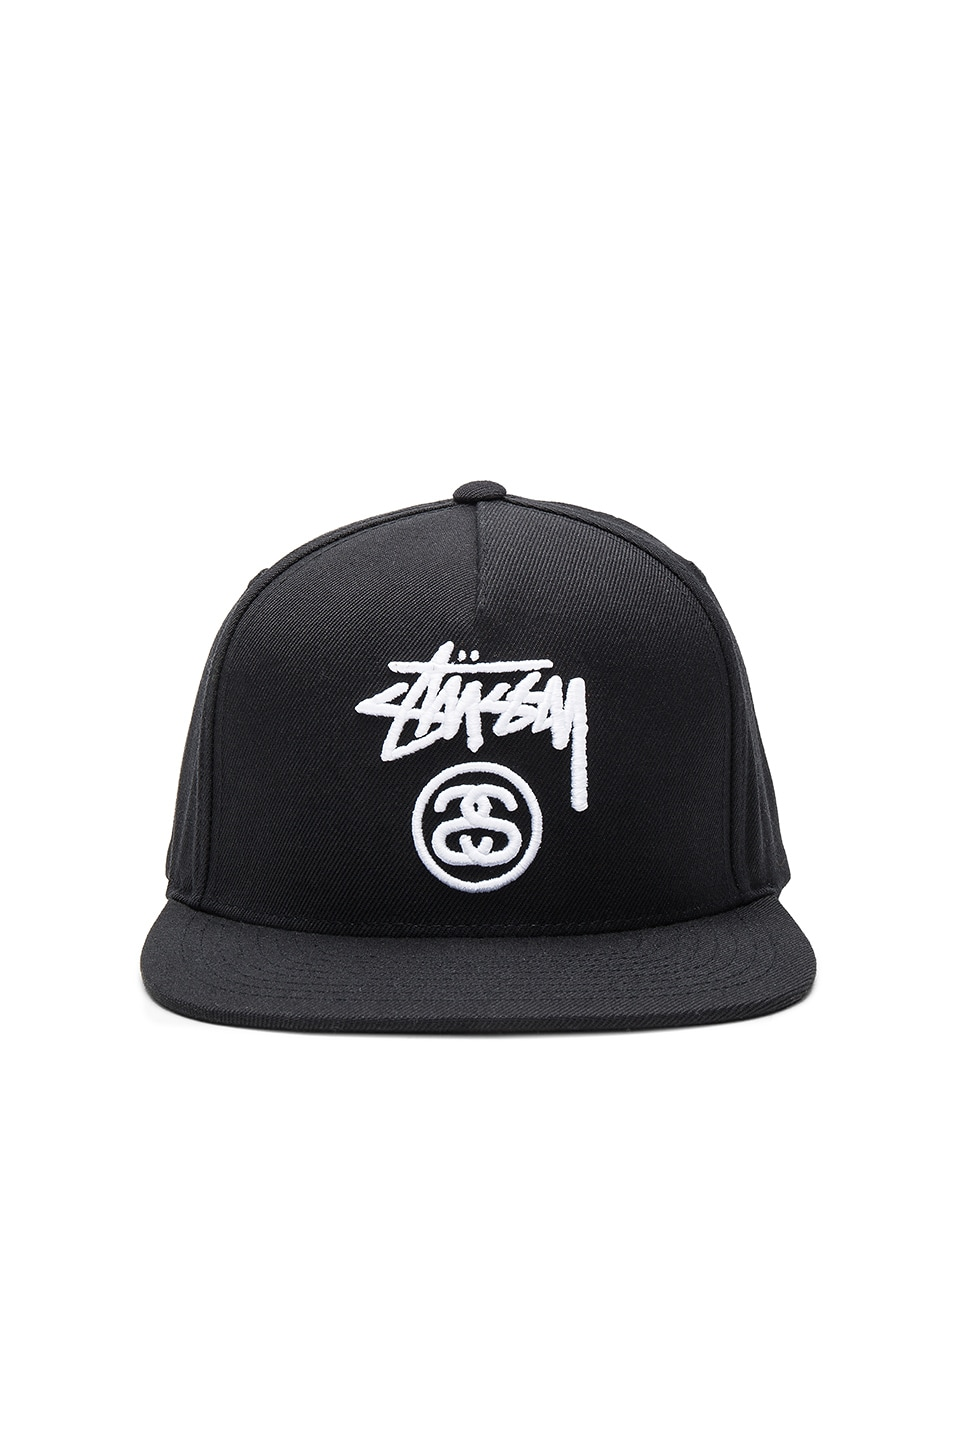 Stock Lock Hol 16 Snapback by Stussy